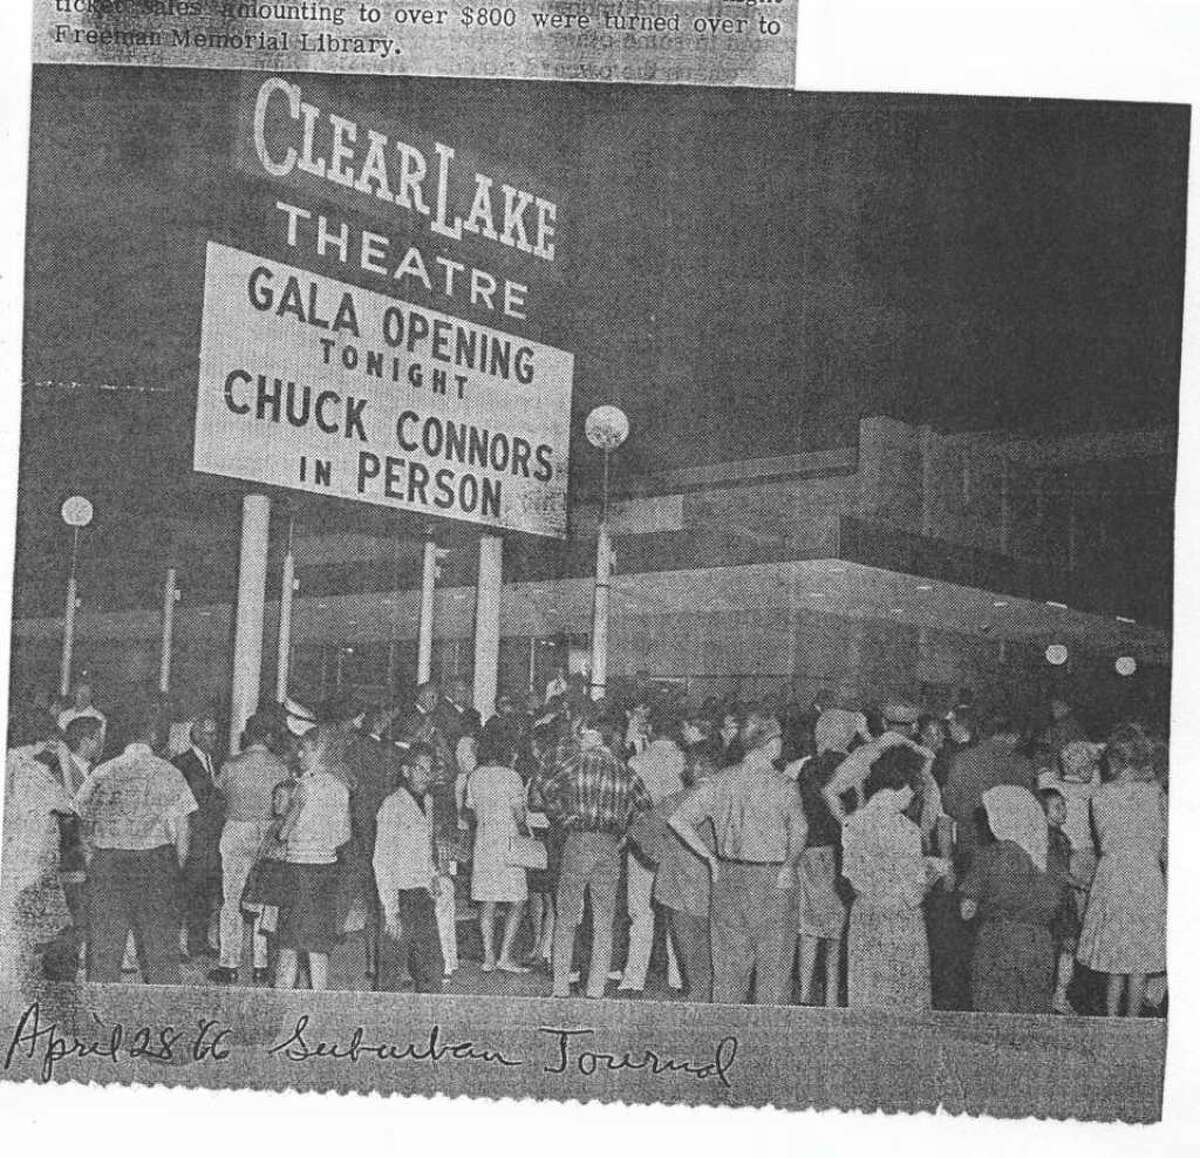 """The opening of the Clear Lake Theatre in 1966 included an appearance by Chuck Connors, who had starred in the television show """"The Rifleman."""""""